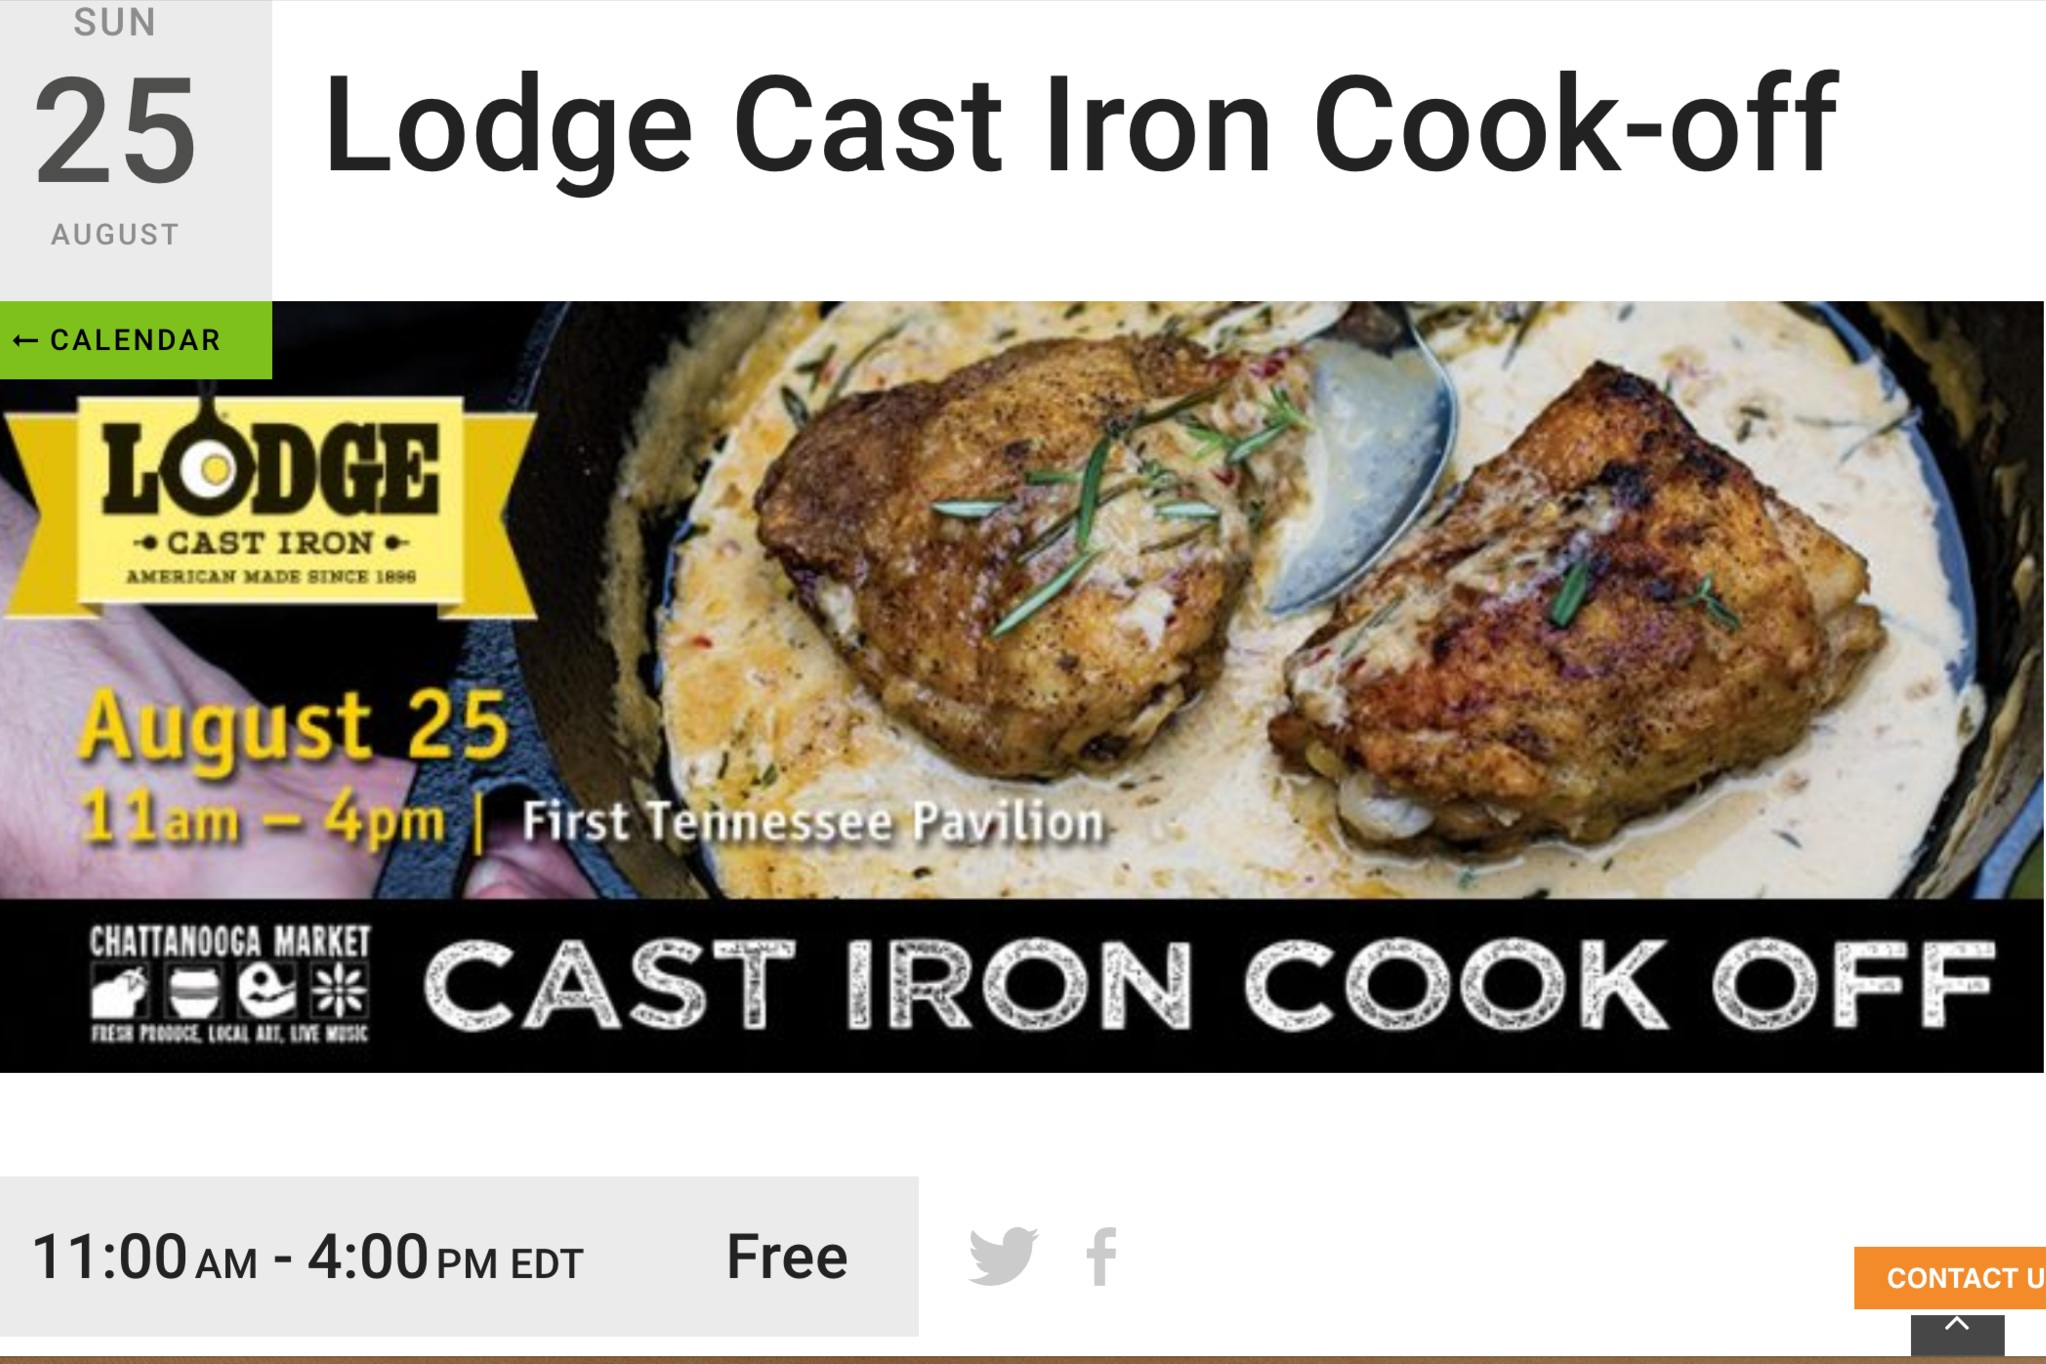 August 25th - Who will become Chattanooga's next (lodge) Iron chef? We will be there flaunting our jewels and tee's to see who will win!